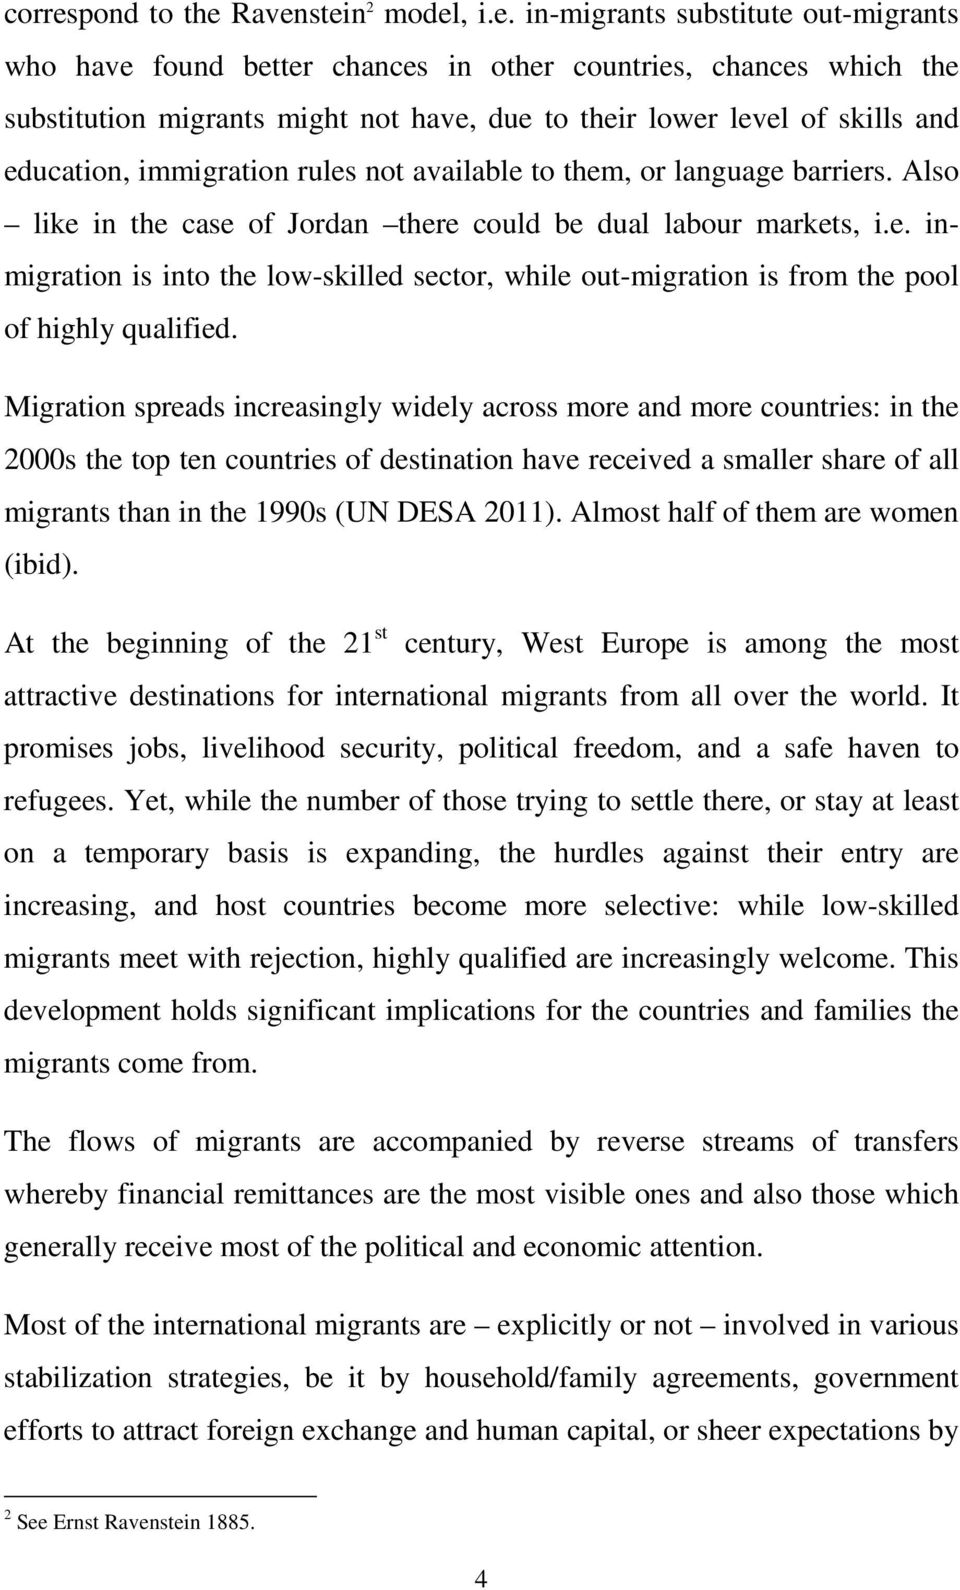 Ravenstein 2 model, i.e. in-migrants substitute out-migrants who have found better chances in other countries, chances which the substitution migrants might not have, due to their lower level of